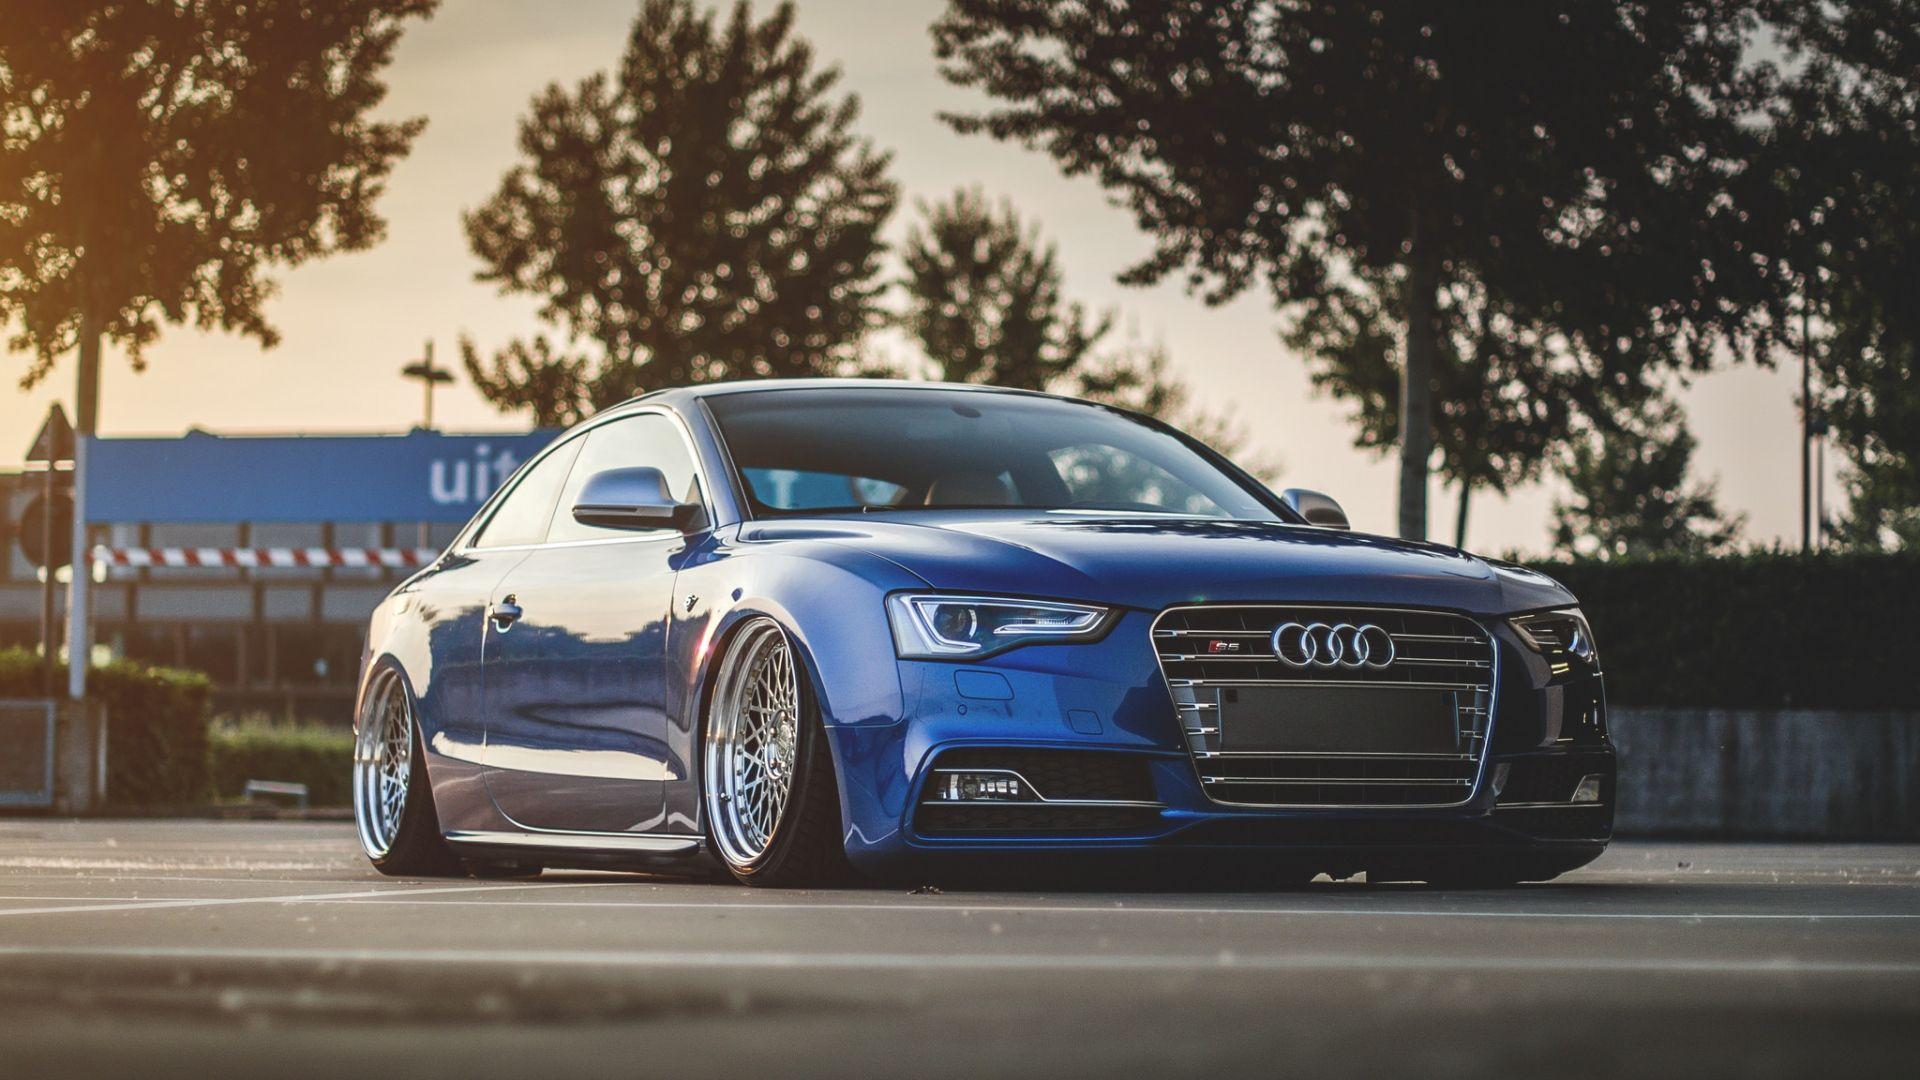 Audi wallpapers, car wallpapers and backgrounds